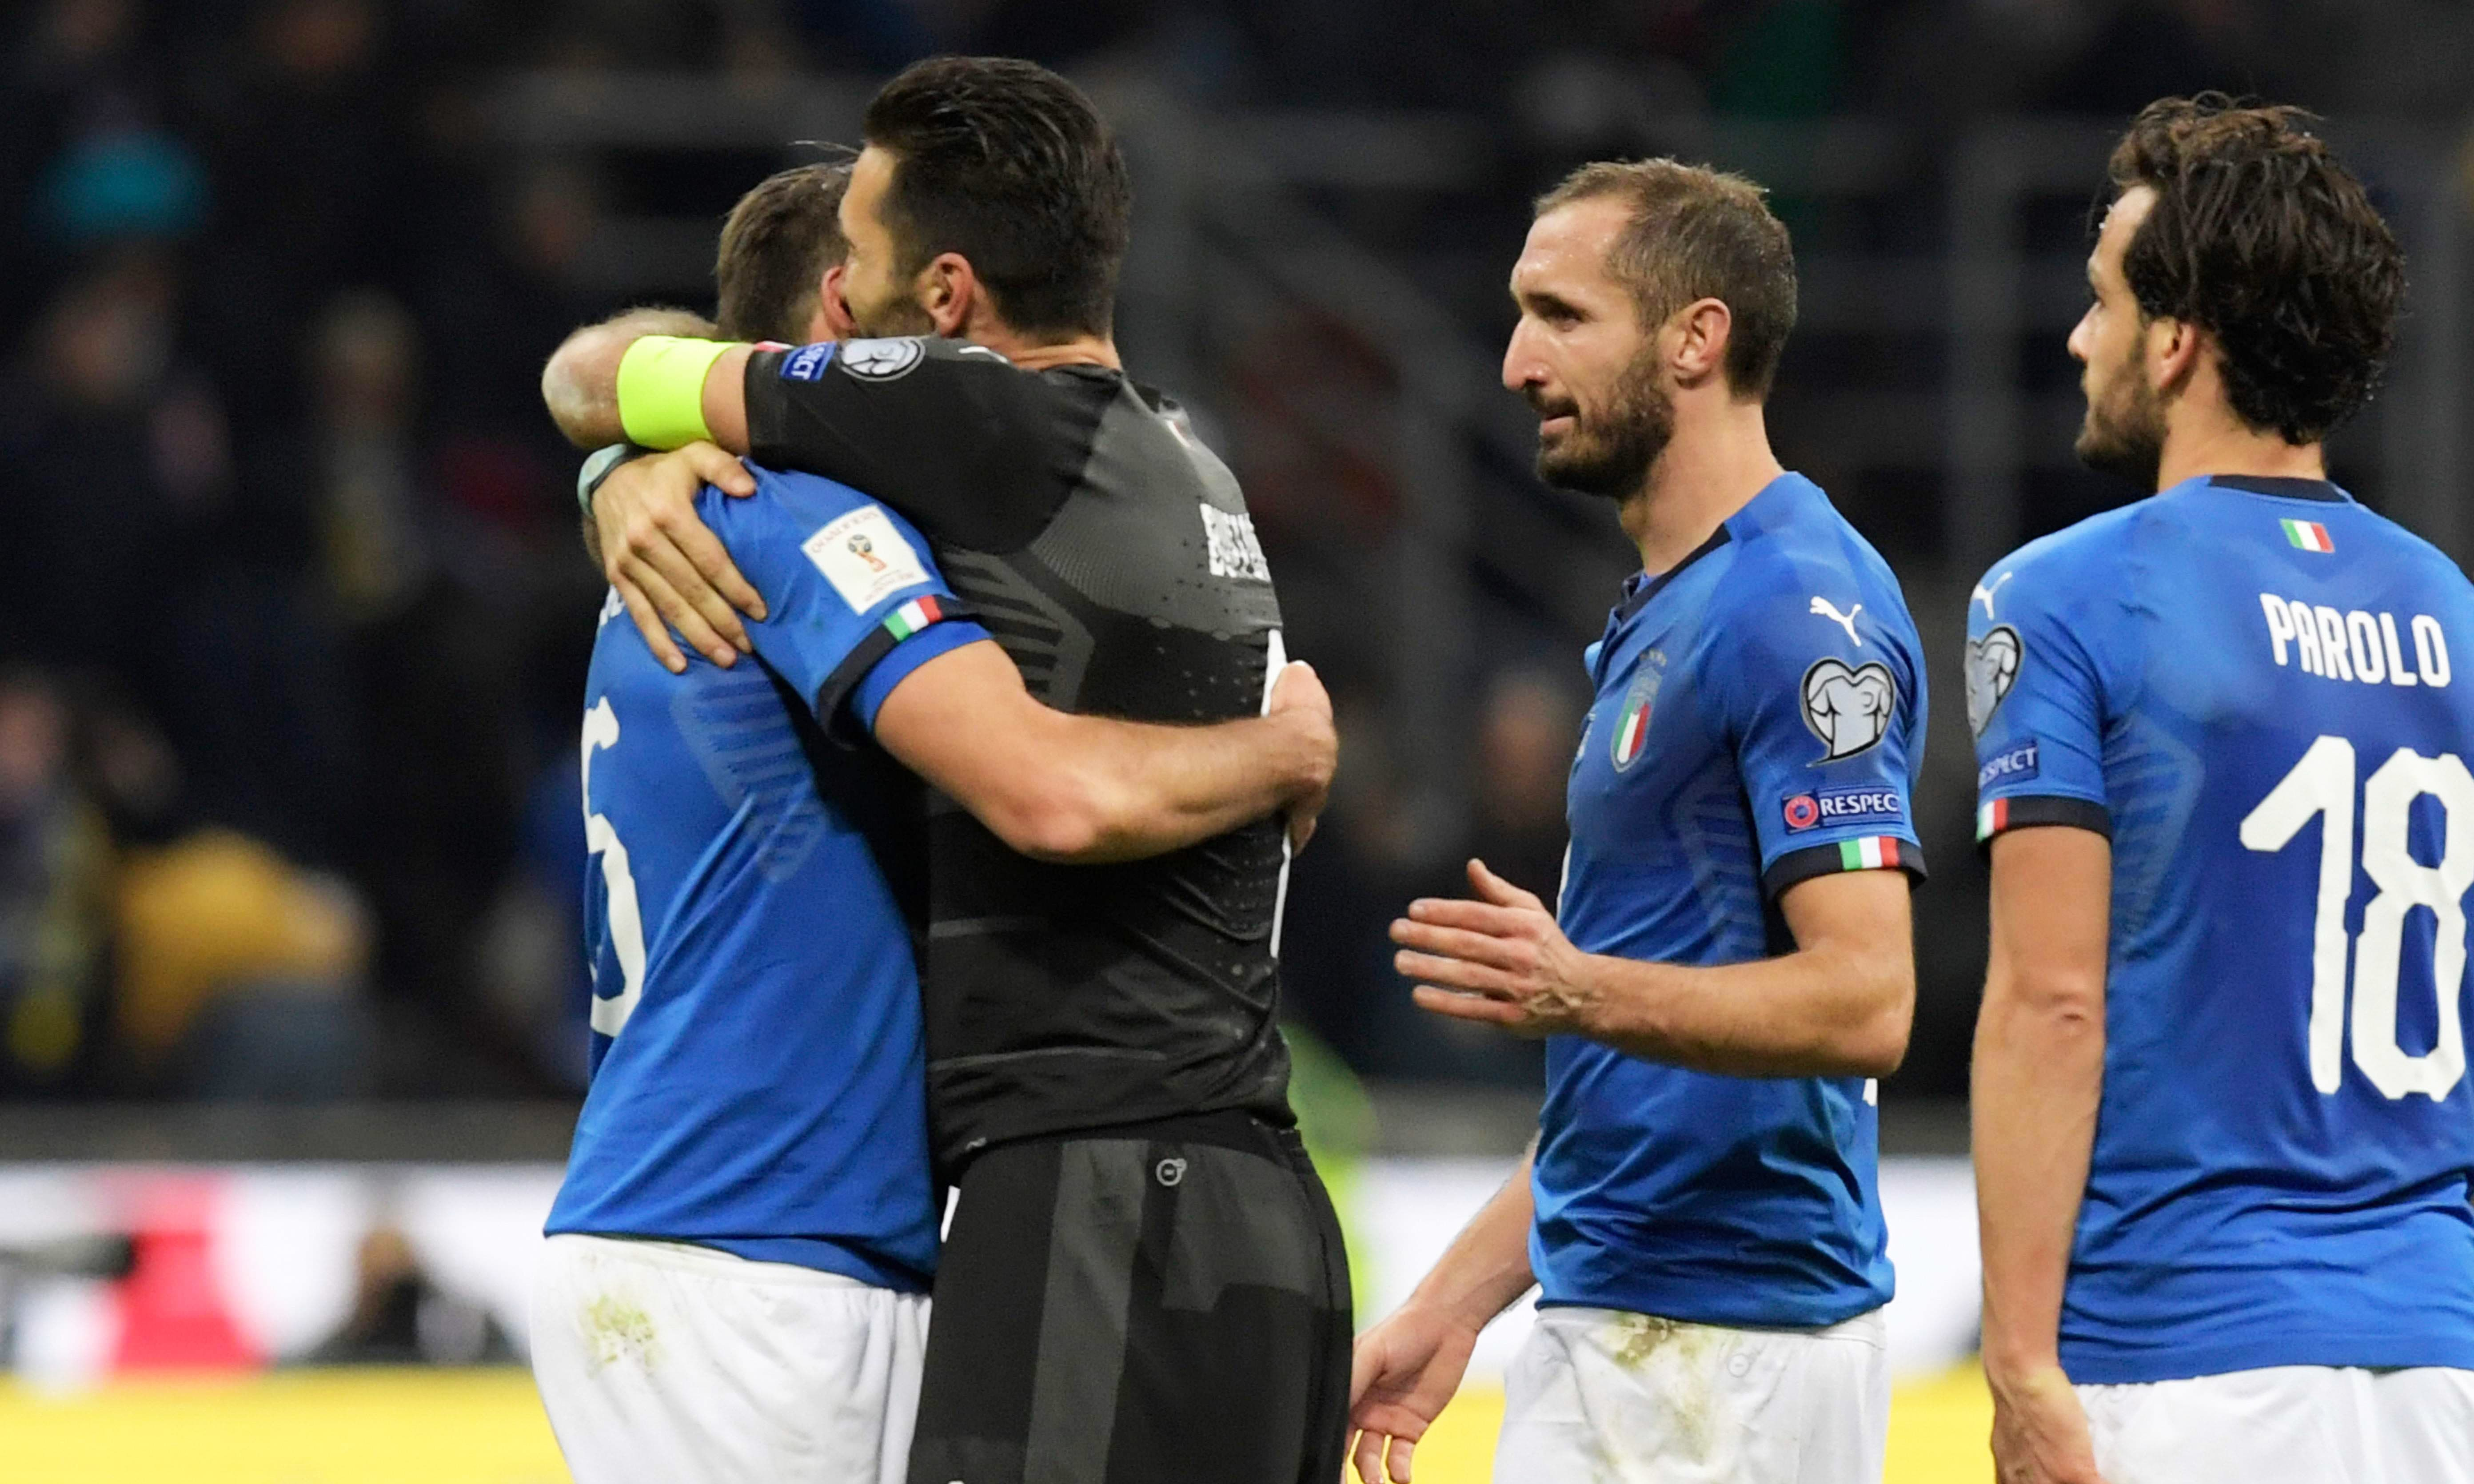 From left: Italy's defender Andrea Barzagli, Italy's goalkeeper Gianluigi Buffon, Italy's midfielder Giorgio Chiellini and Italy's midfielder Marco Parolo react at the end of the FIFA World Cup 2018 qualification football match. —AFP